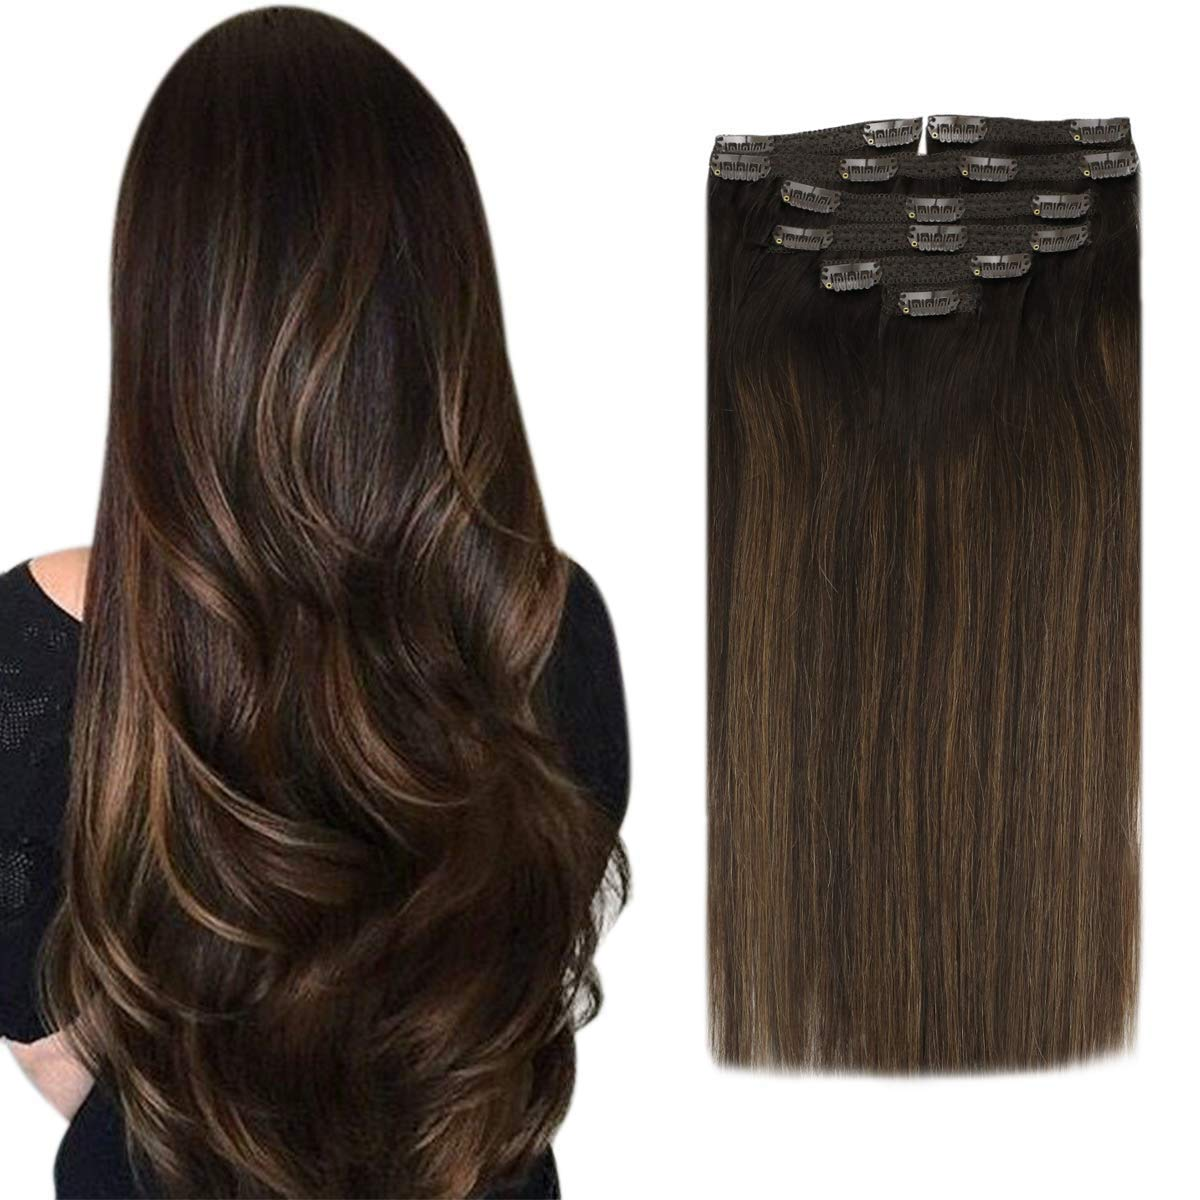 Sunny Balayage Clip in Hair Extensions Dark Brown Mix Medium Brown 12inch  Remy Clip in Balayage Hair Extensions Human Hair Full Head Set 12PC 12G